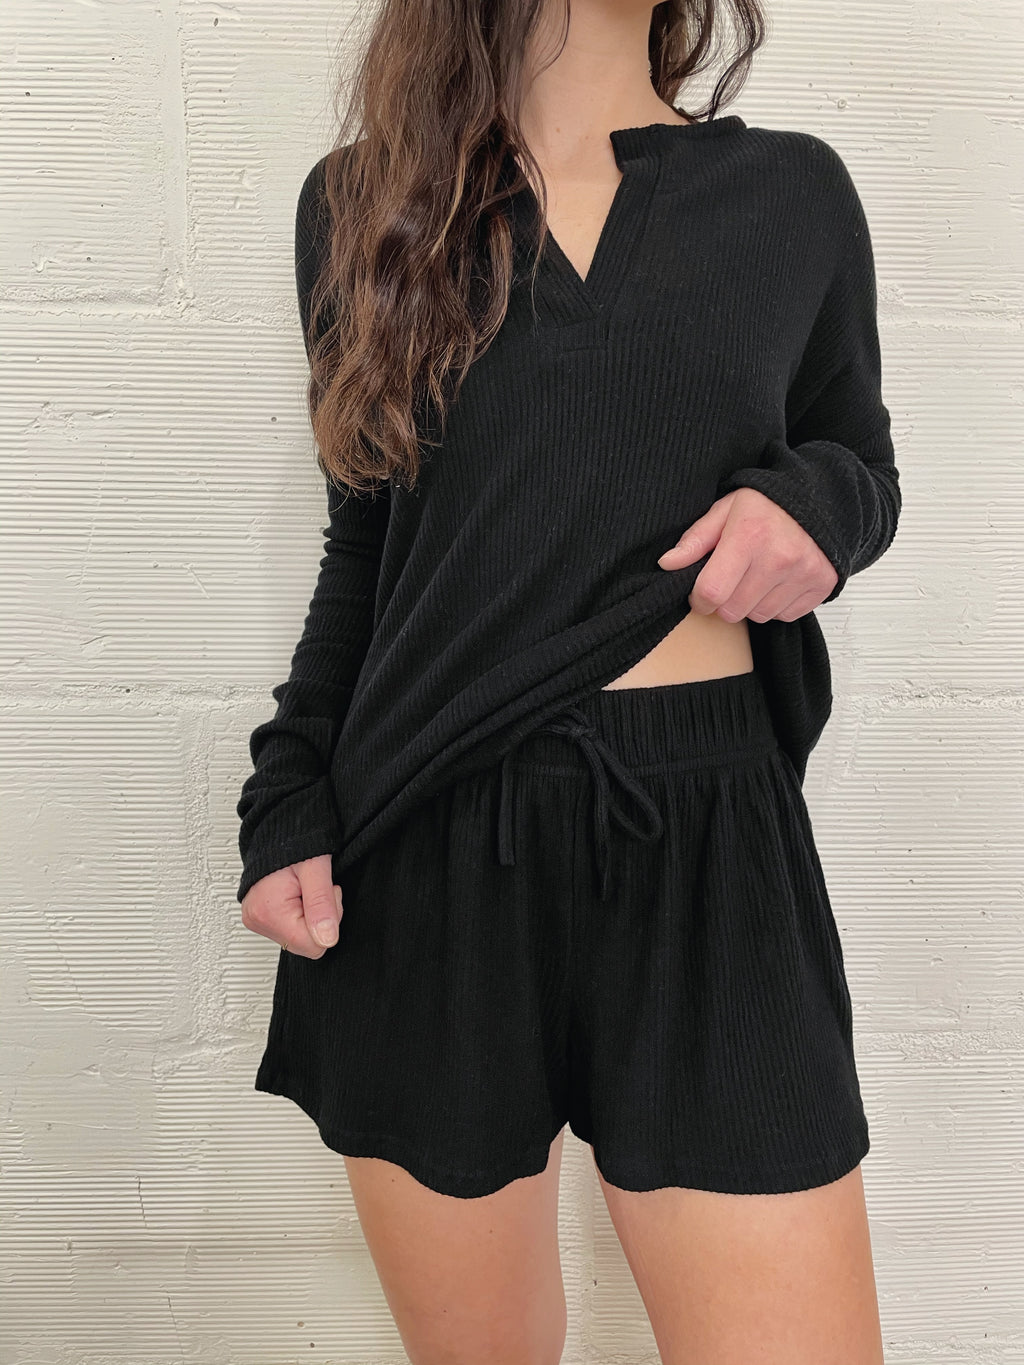 Morning Coffee Shorts - Black